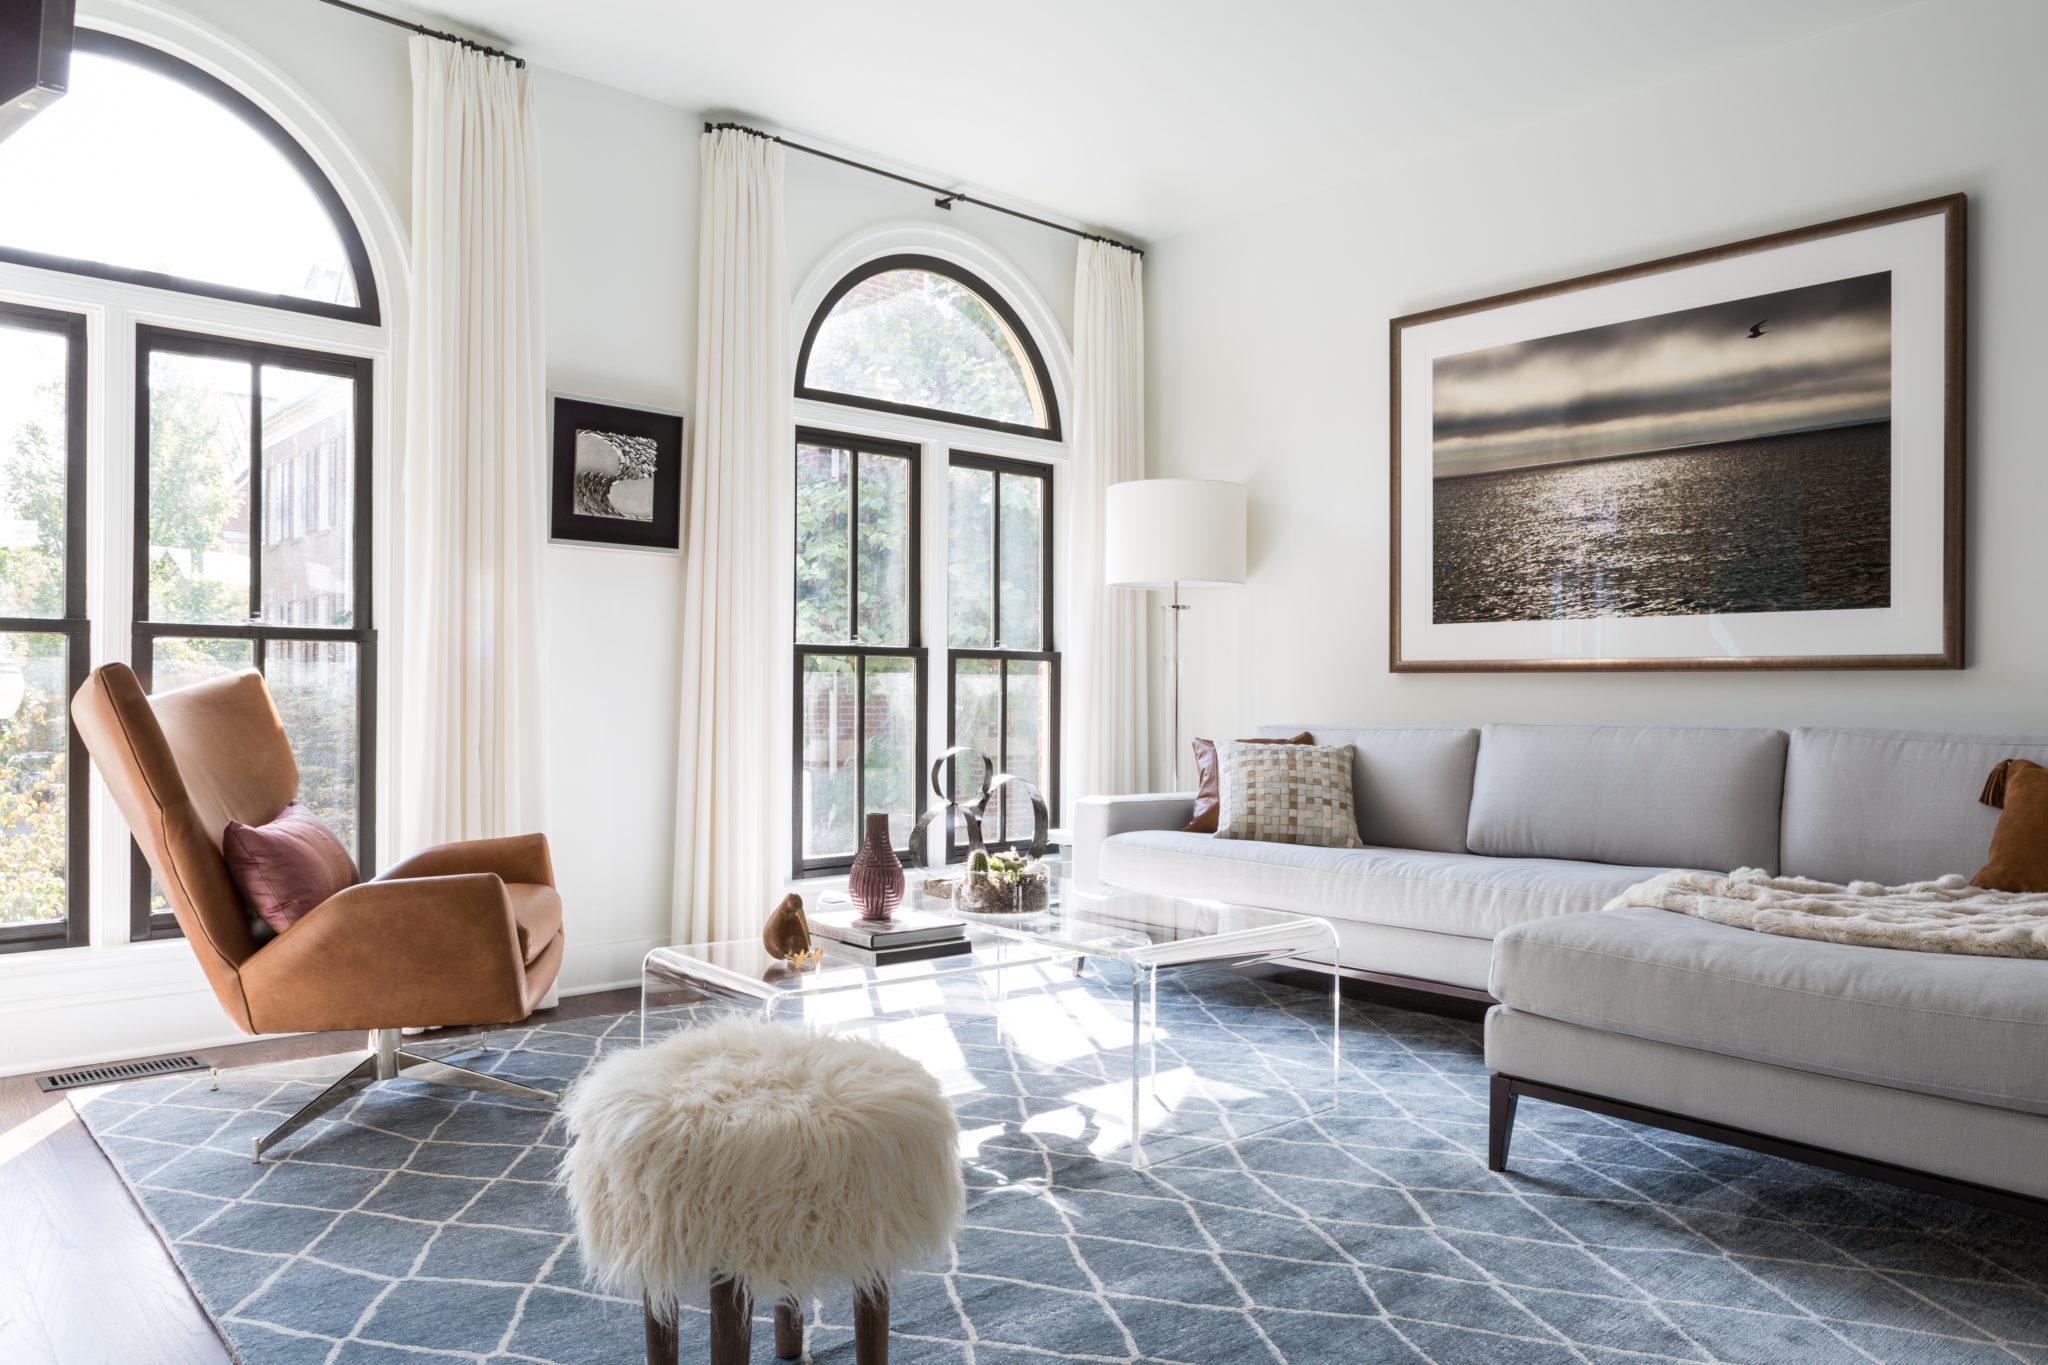 """""""This project is one of my favorites because it reflects our core philosophy of simplicity and ease. It depicts our love of creating light-filled spaces, working with neutrals, and incorporating a range of textures to add interest, depth, and warmth. When our client purchased this townhouse, it was closed in, dark, and dated. We were able to transform it into an open, light-filled, serene modern oasis. This would not have been possible without her trust, an integral part of the process for us. Our goal was also to infuse her vibrant personality into the space — and to do that, we included some whimsical, fun pieces throughout."""" — Celia Welch, Celia Welch Interiors"""